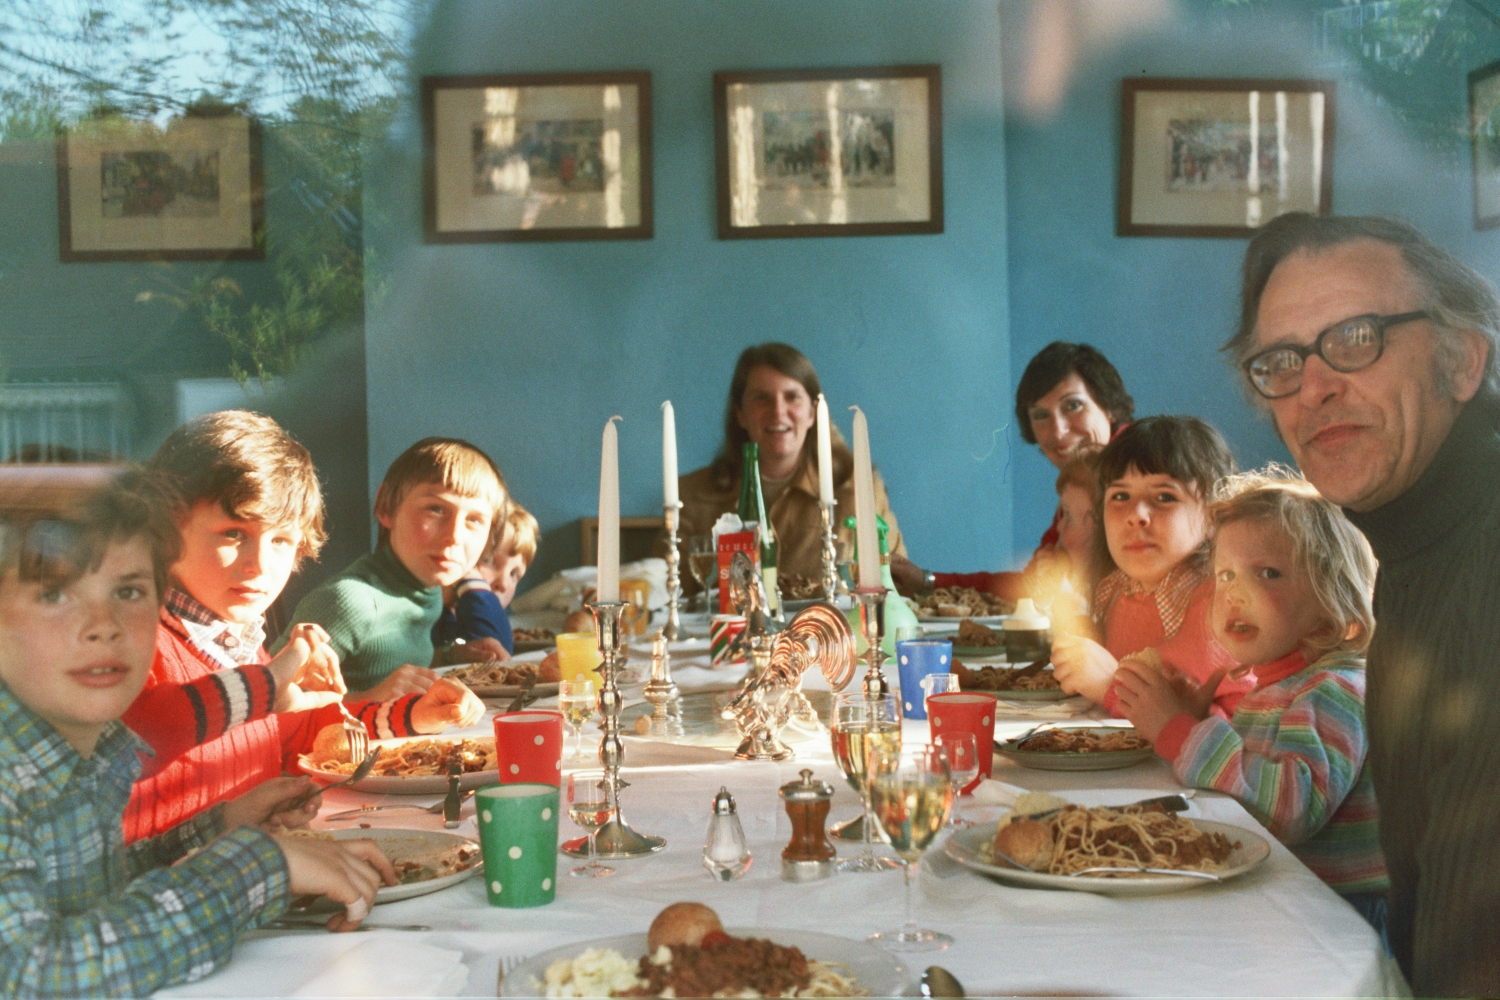 The Shearer Family and the Hunt Family at Dinner in Woodford in the 1980s